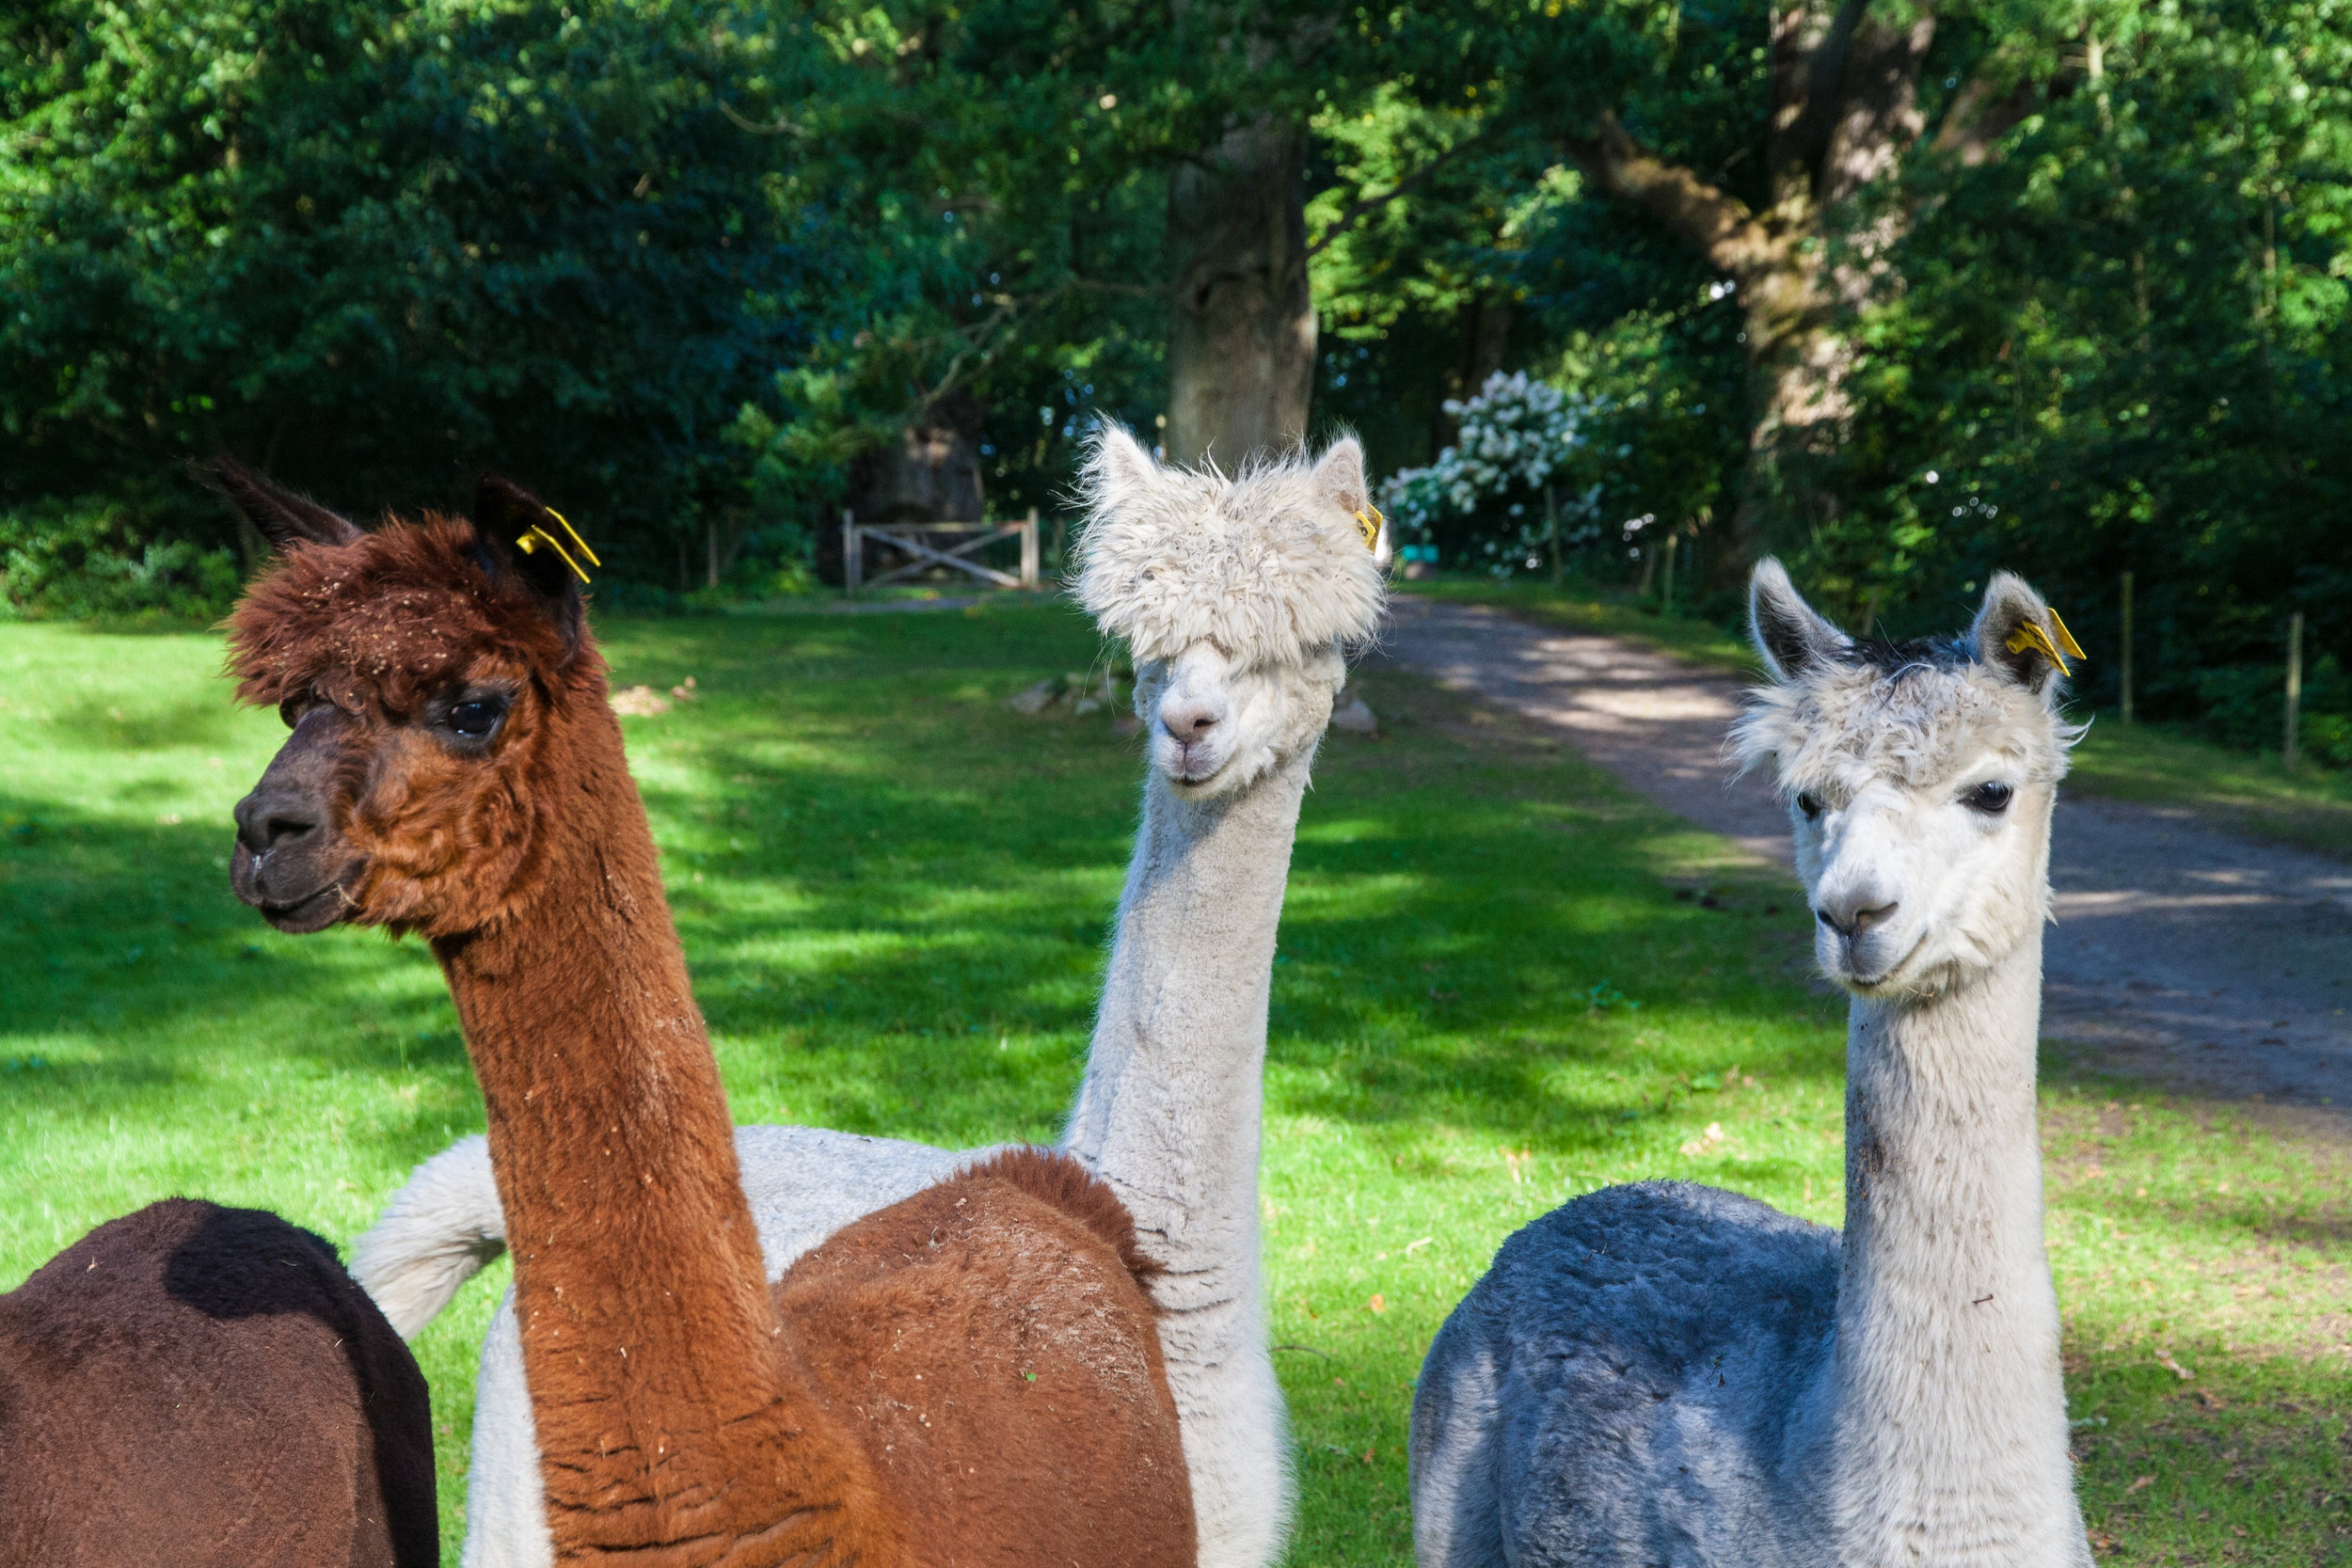 Curious alpacas keep an eye on things - and visitors - in the park.